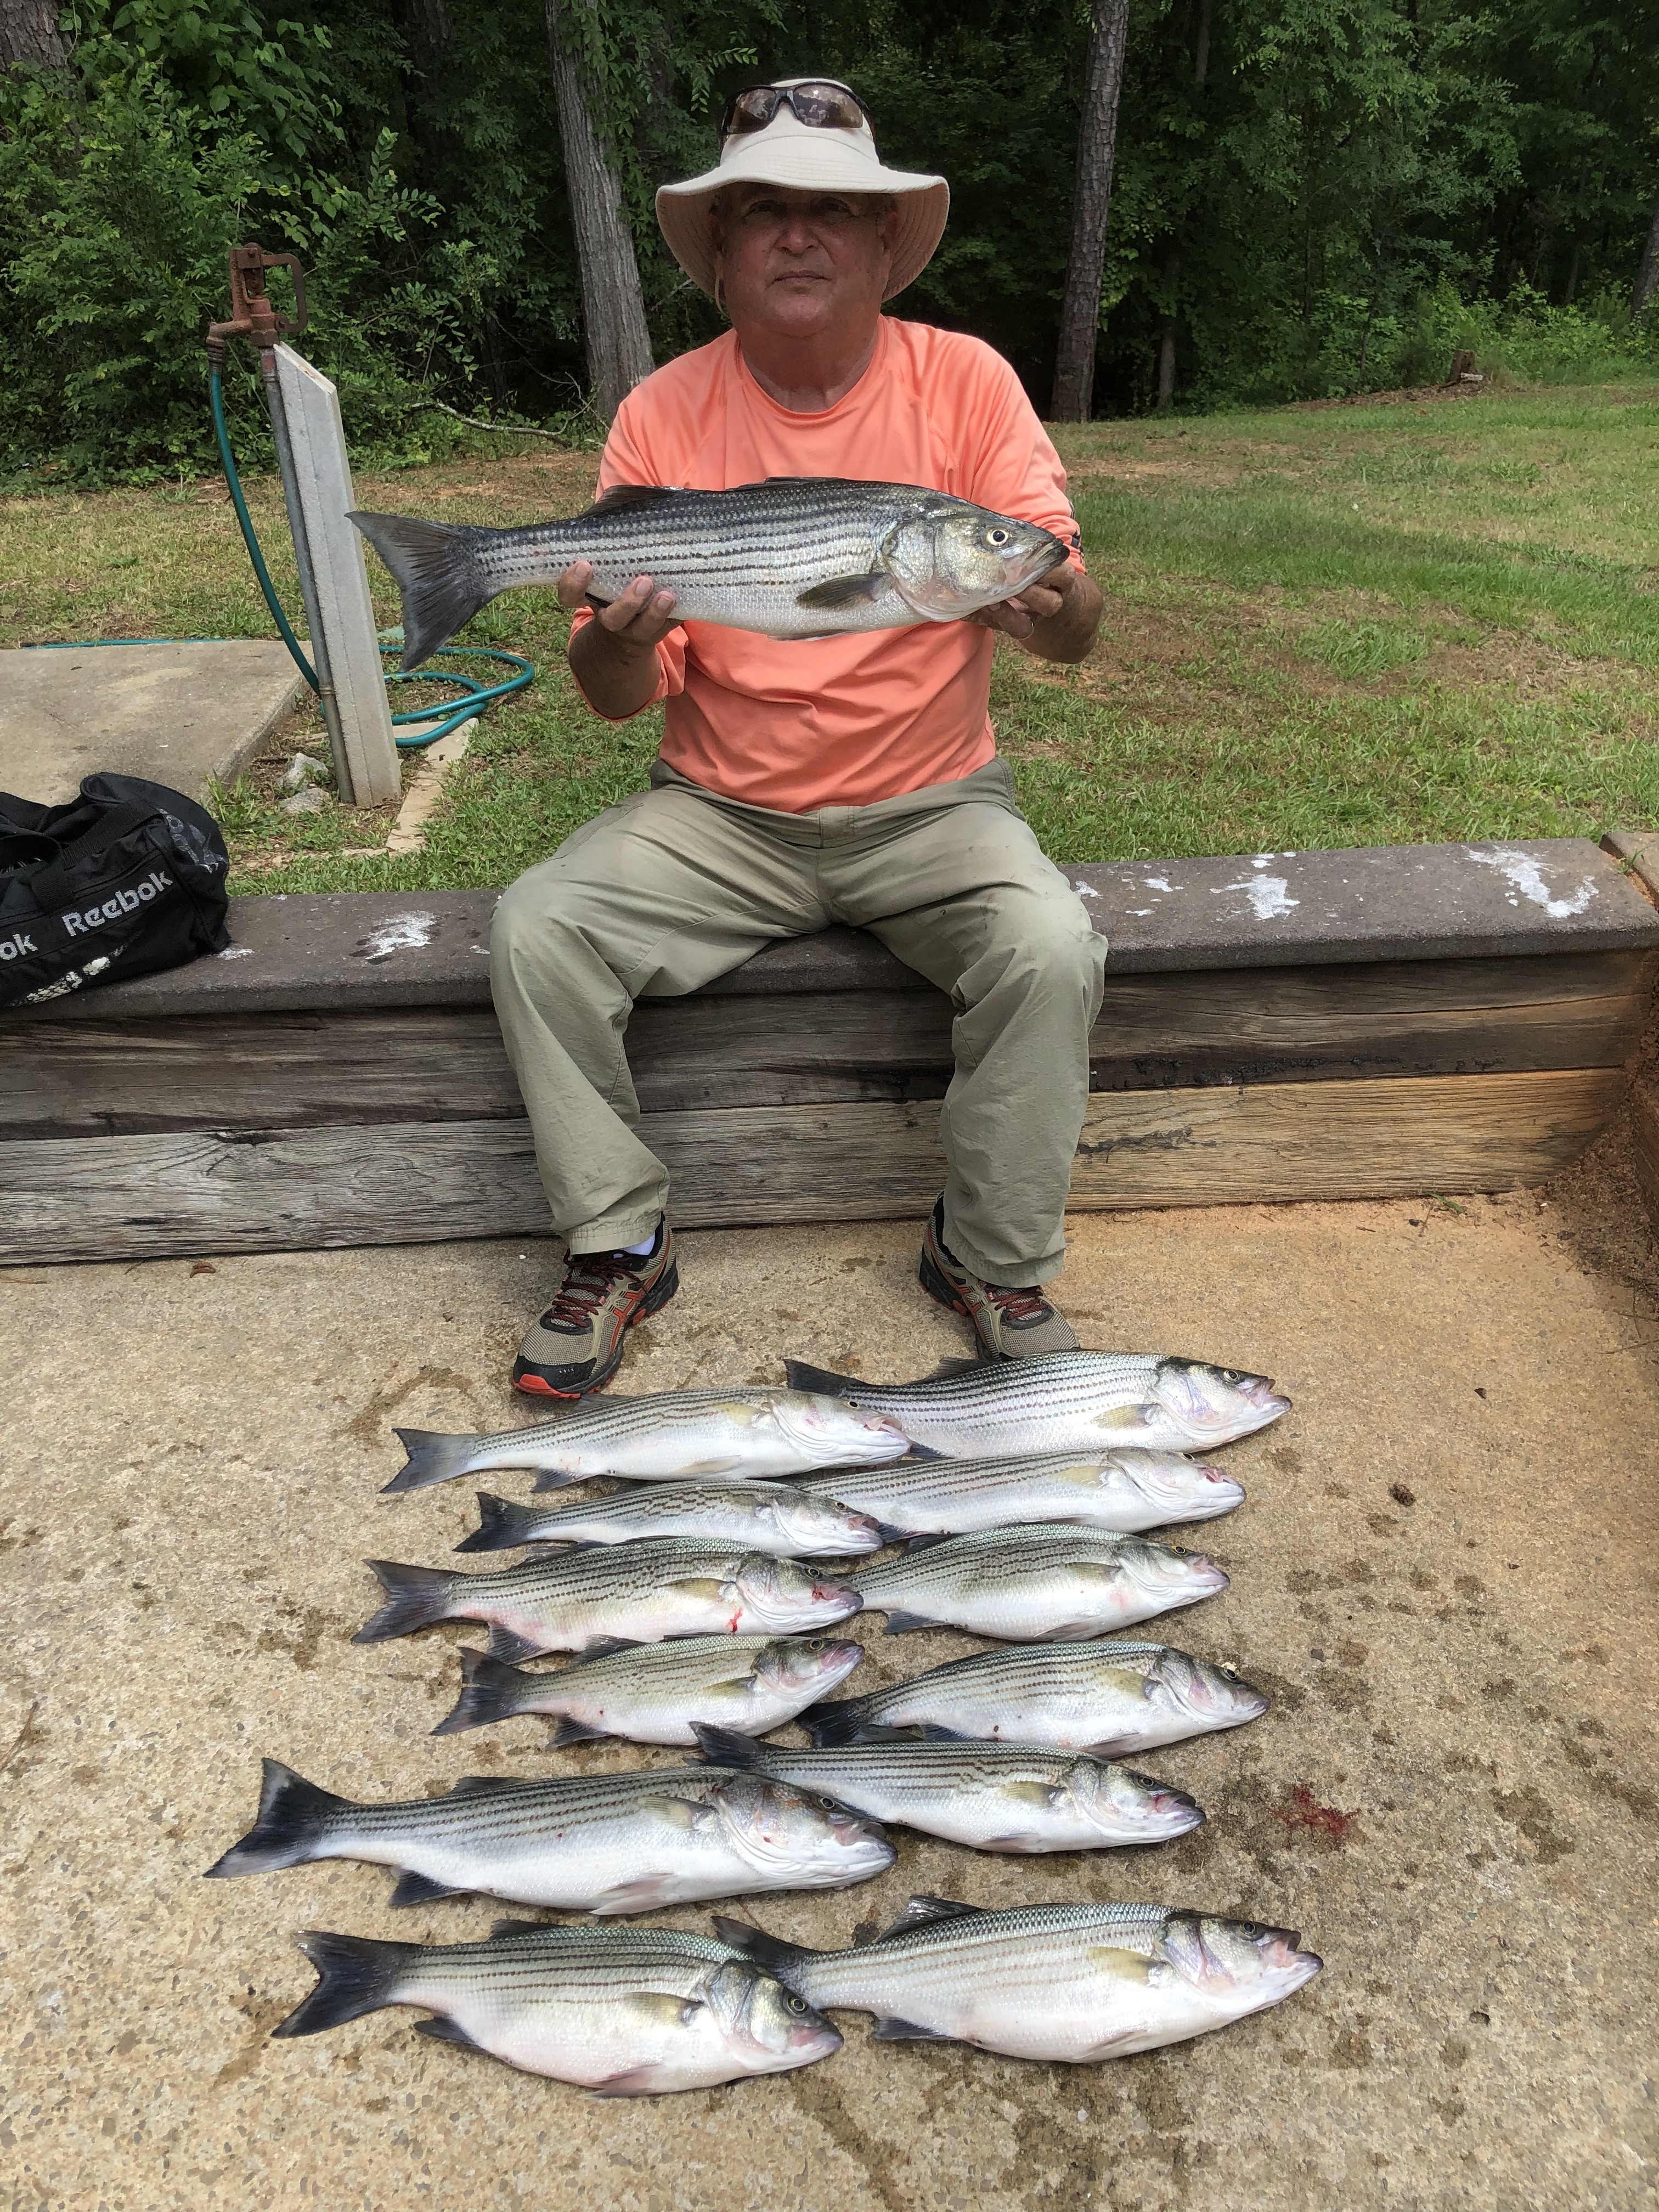 May-6-2019-Ricky-Cleghorn-catch-of-the-day.